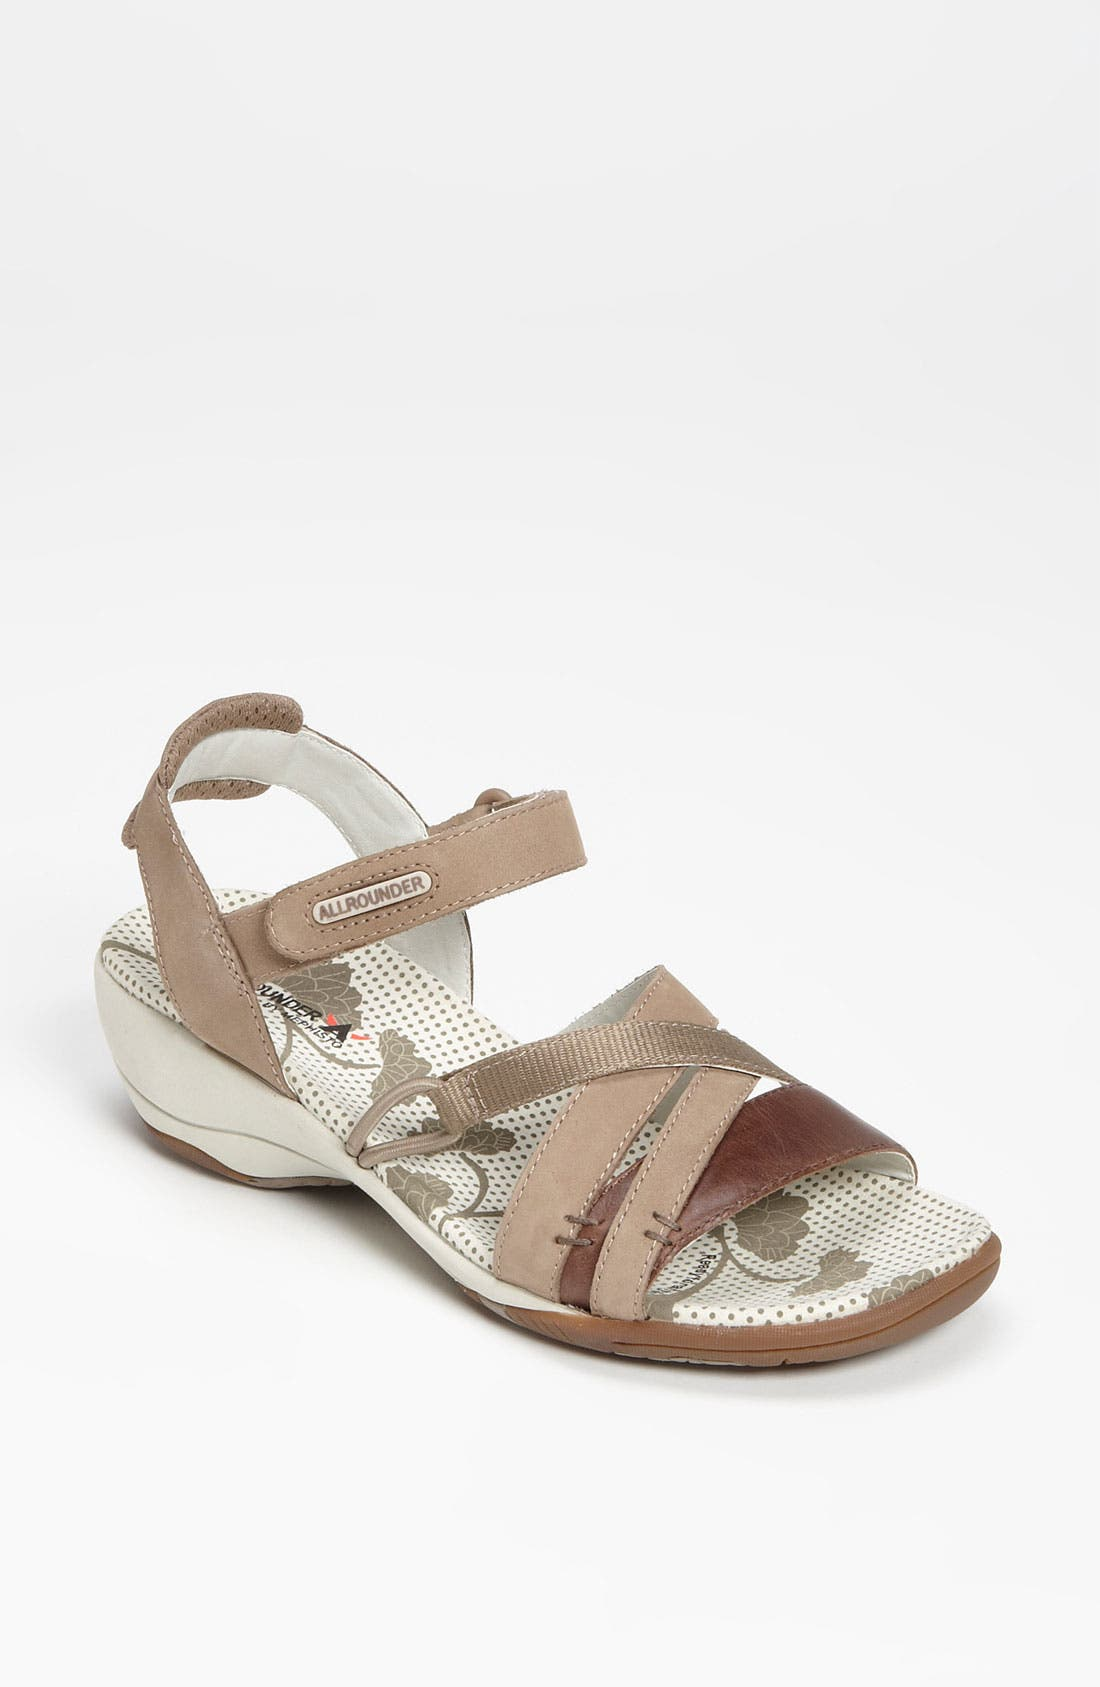 Alternate Image 1 Selected - All Rounder 'Erla' Sandal